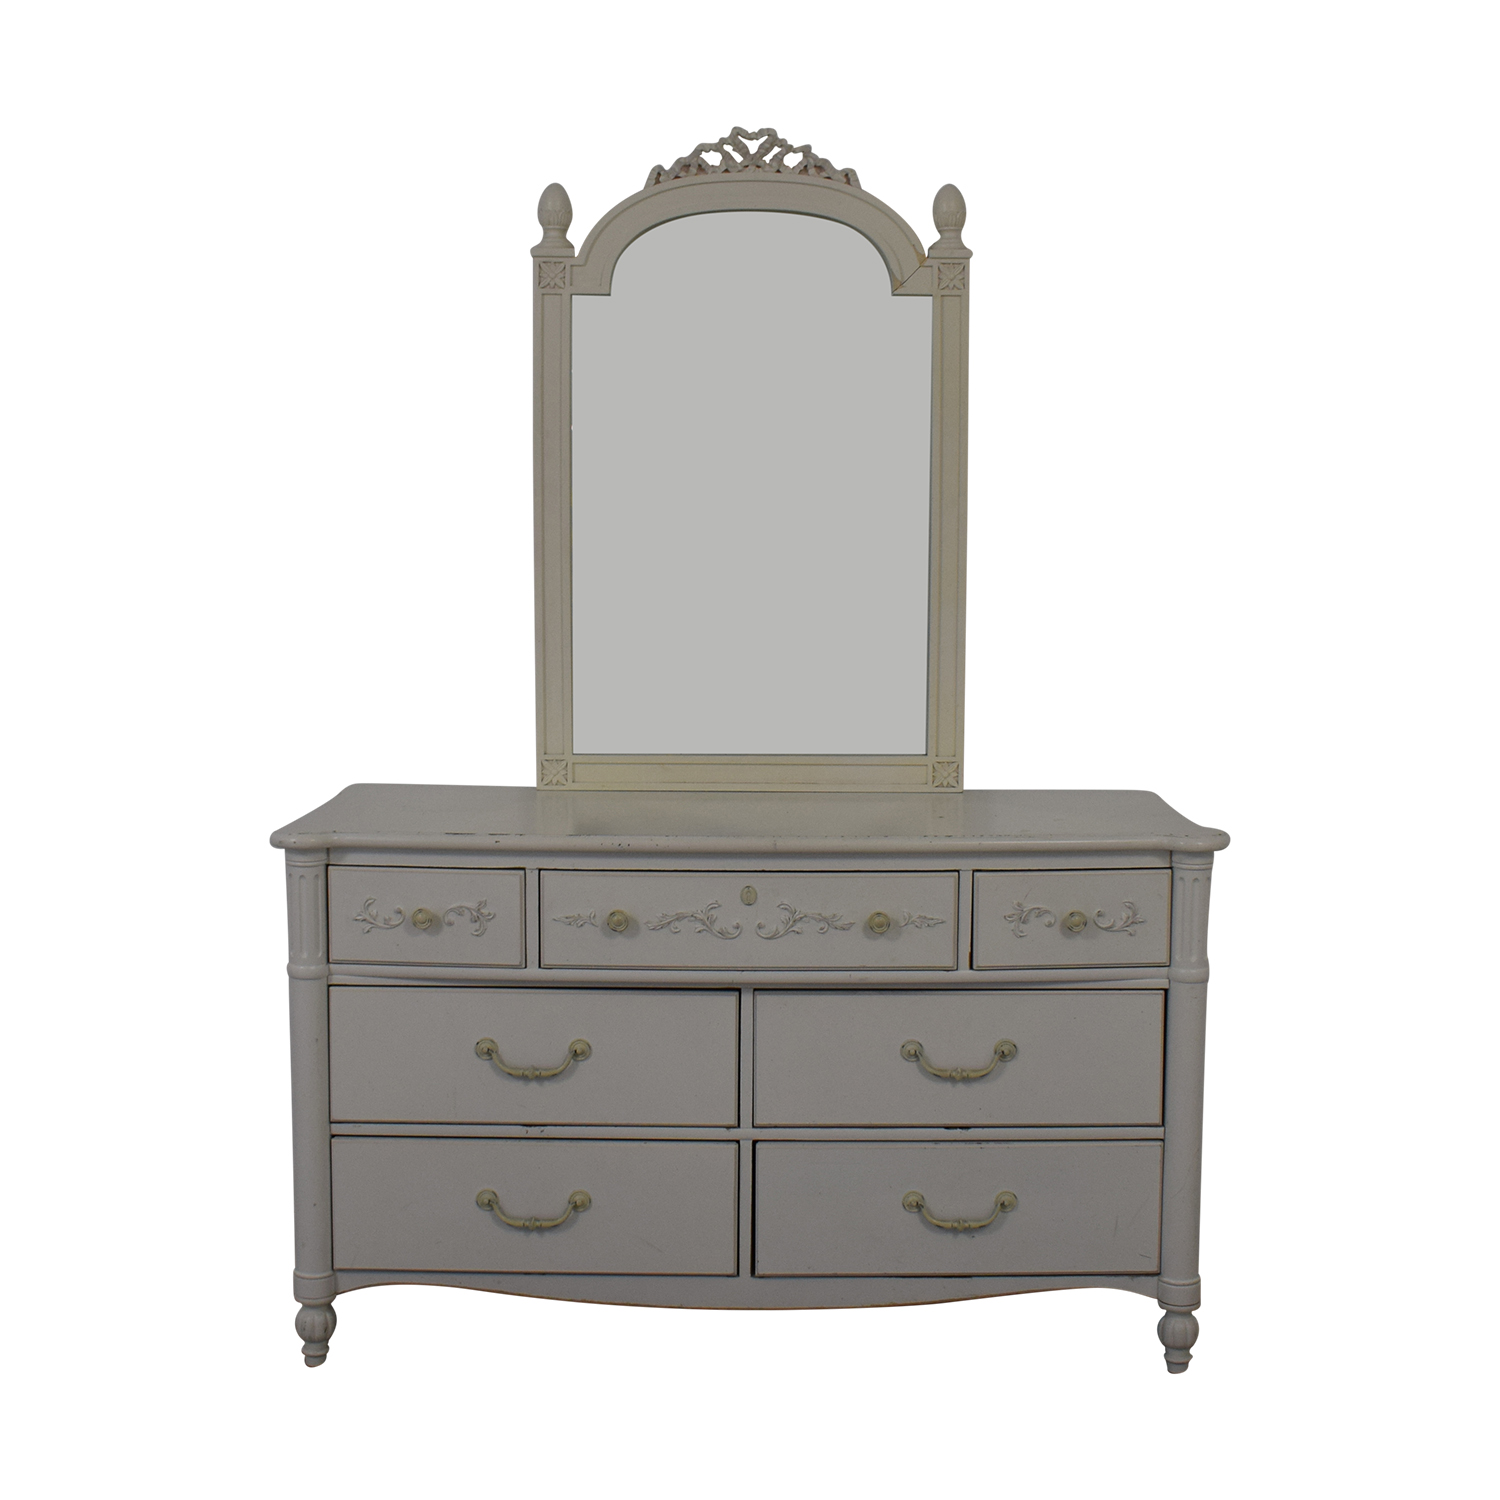 Stanley Furniture Stanley Furniture Seven Drawer Dresser With Mirror discount